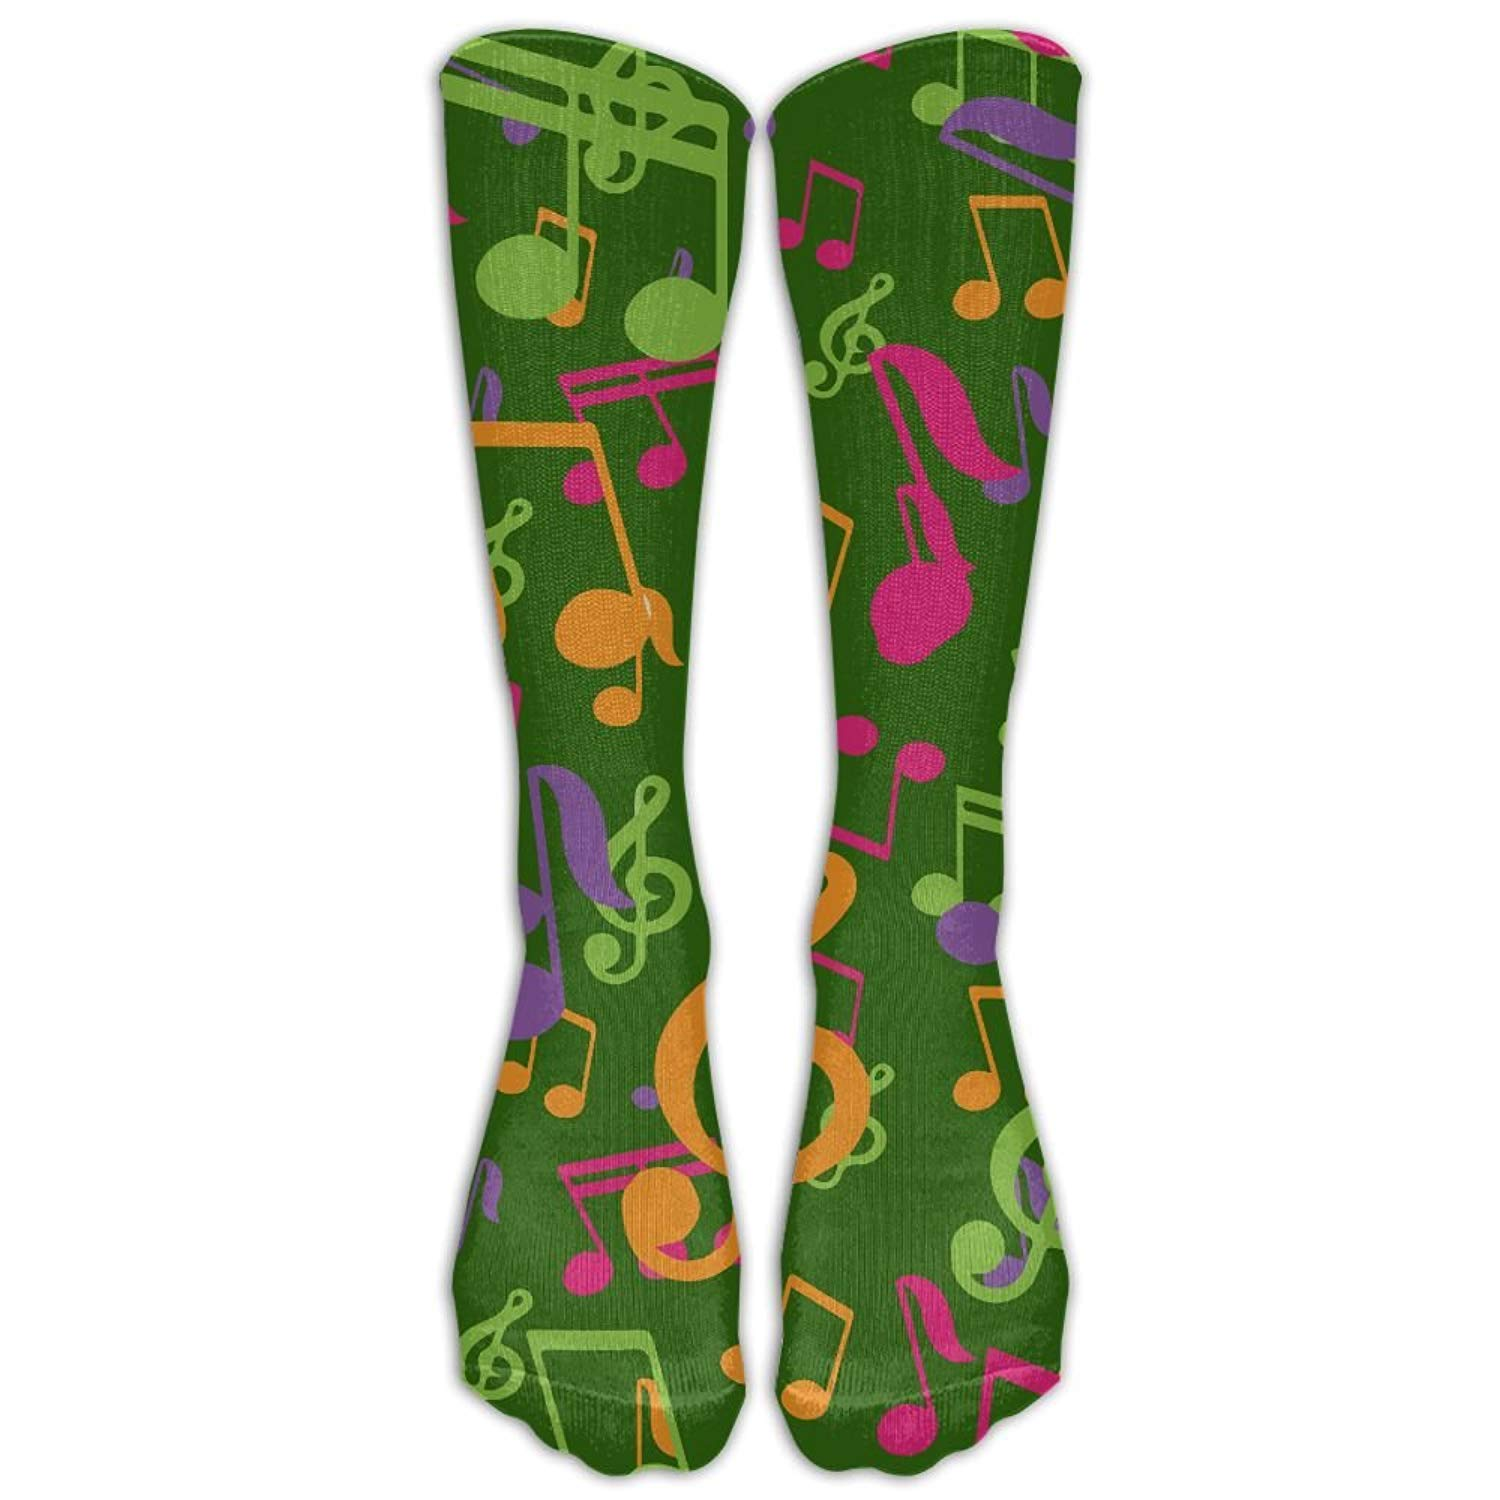 Men/&Women Colorful Music Notes Casual Mid-calf Socks Athletic Sports Novelty Below Knee Tube Stockings One Size